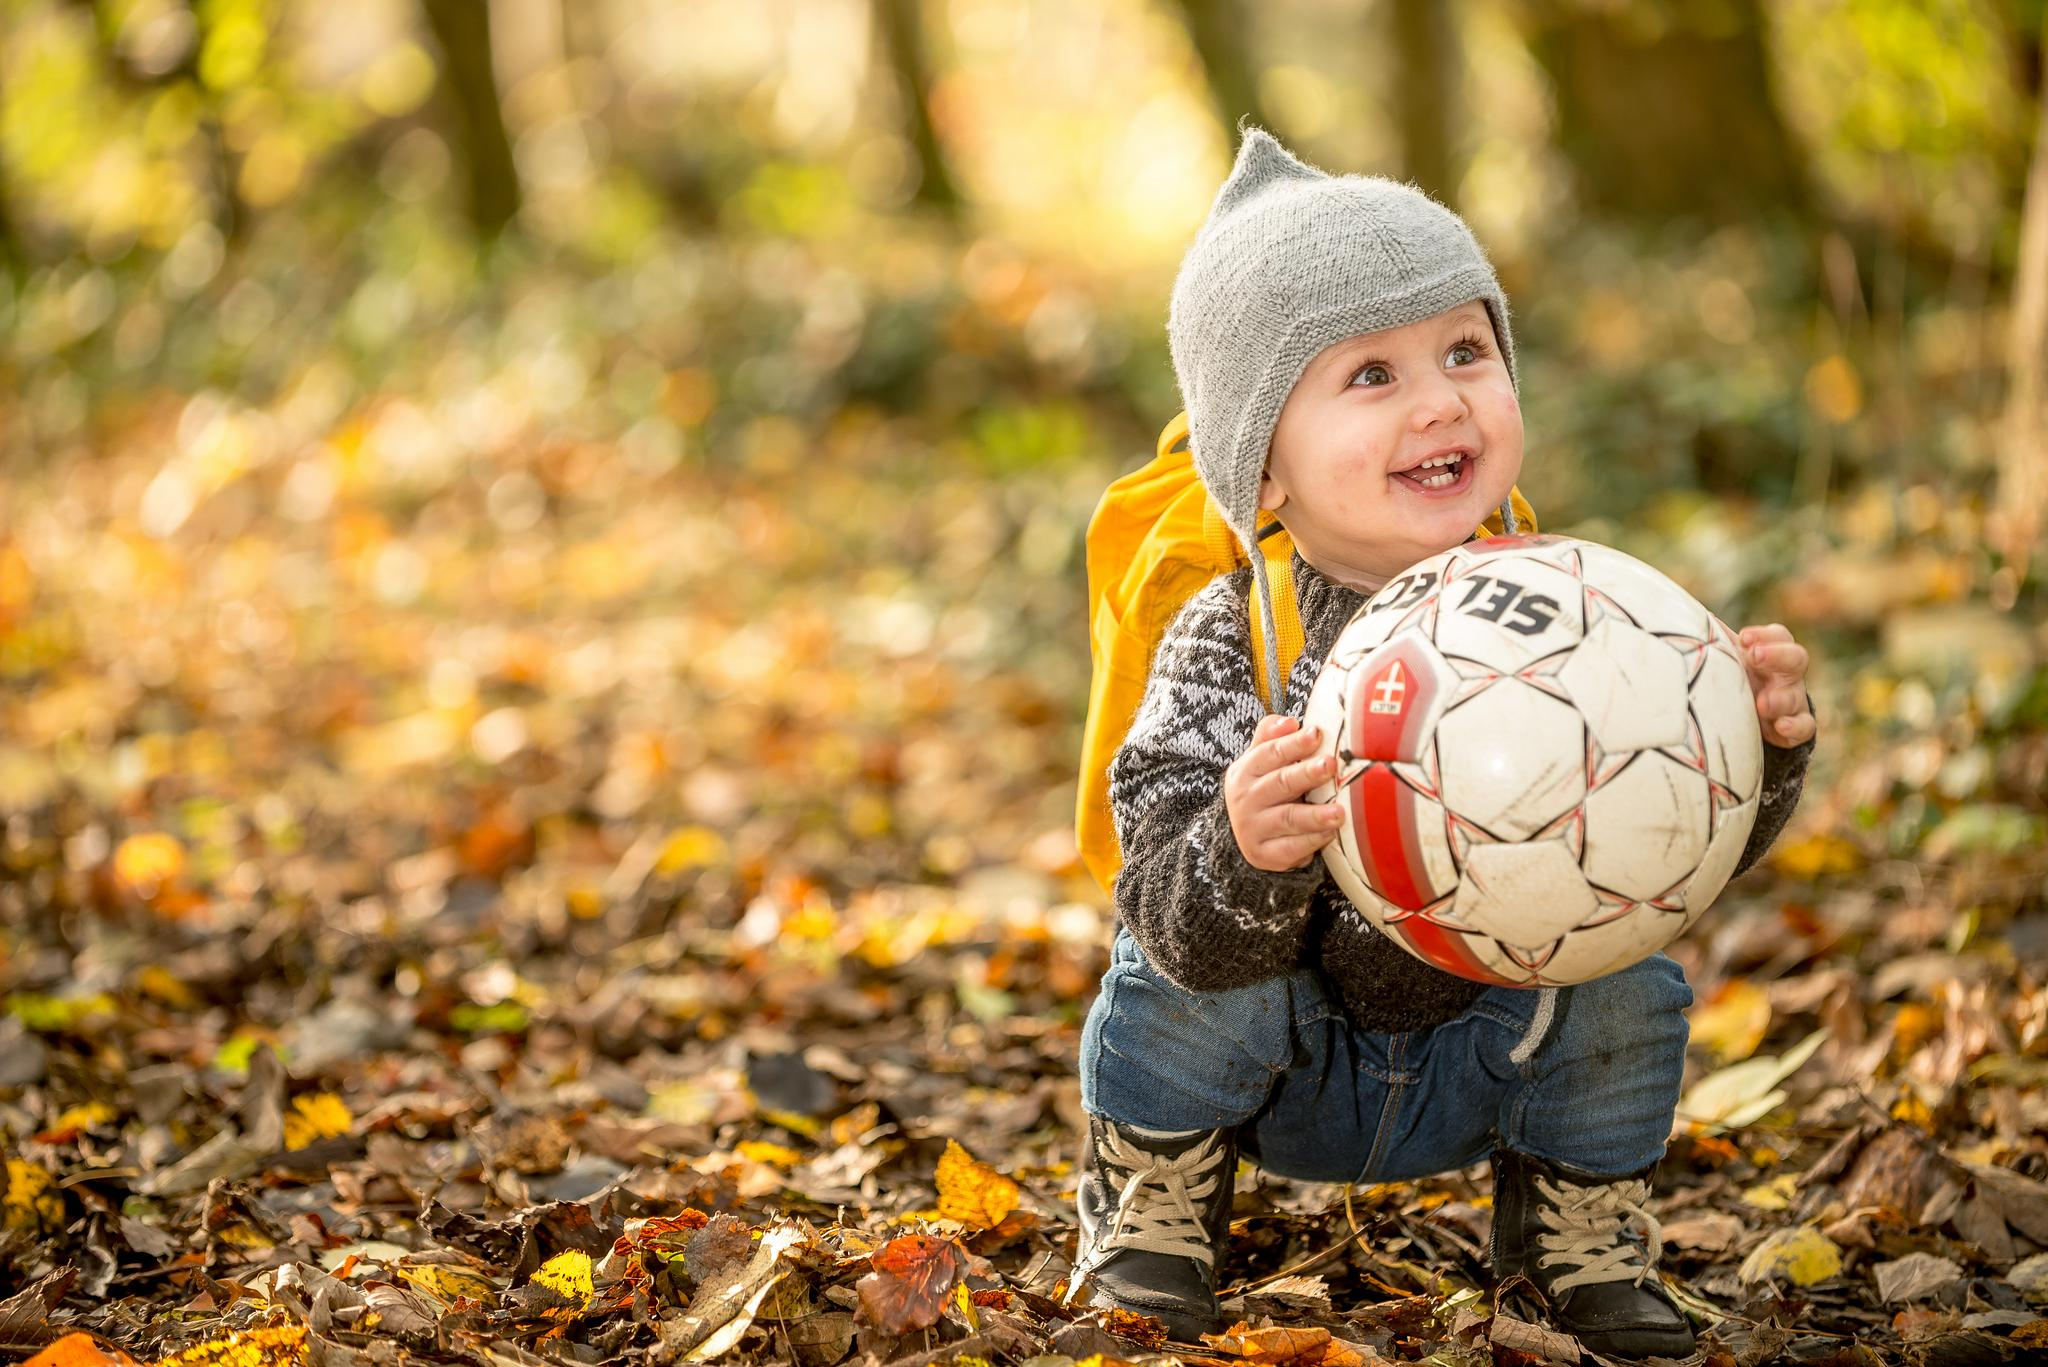 His first football by Hyen